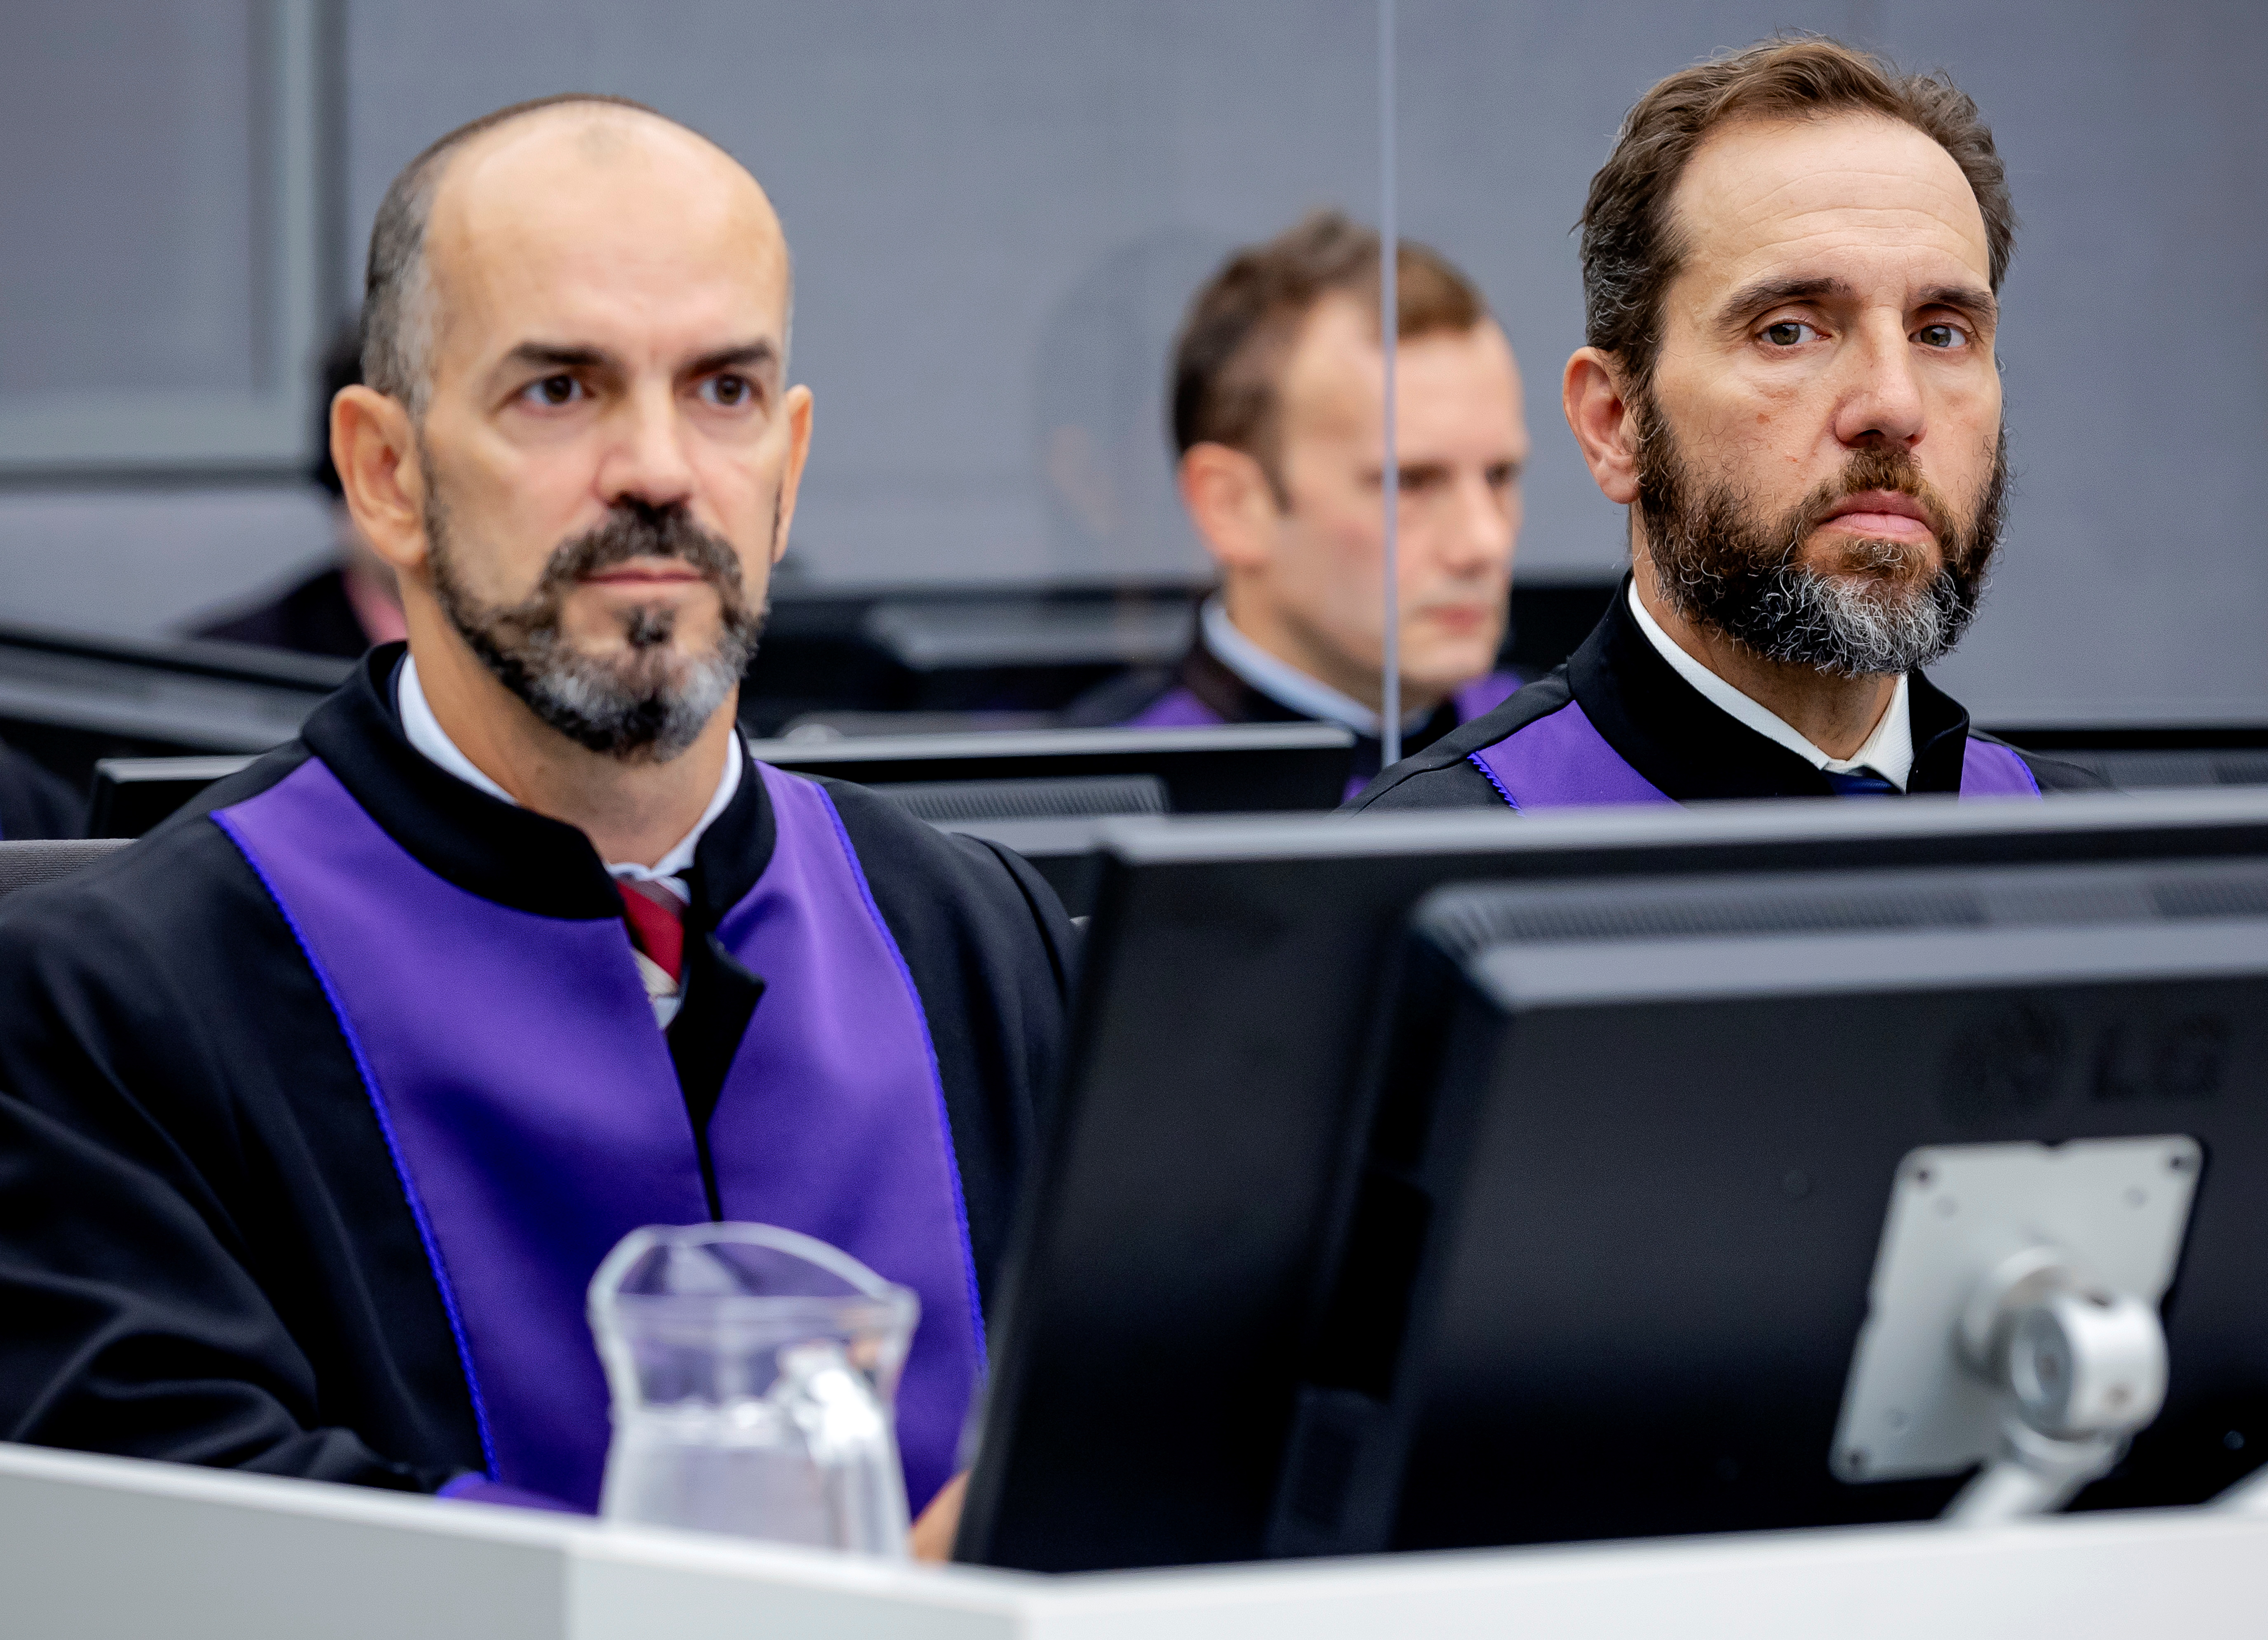 Prosecutors Cezary Michalczuk and Jack Smith look on during the start of trial of former KLA officer Salih Mustafa, accused of murder, torture and cruel treatment during the 1998-1999 Kosovo conflict, before a special tribunal set up to hear cases of war crimes allegedly committed by the Kosovo Liberation Army (KLA), in The Hague, Netherlands, September 15, 2021. Robin van Lonkhuijsen/ANP/Pool via REUTERS